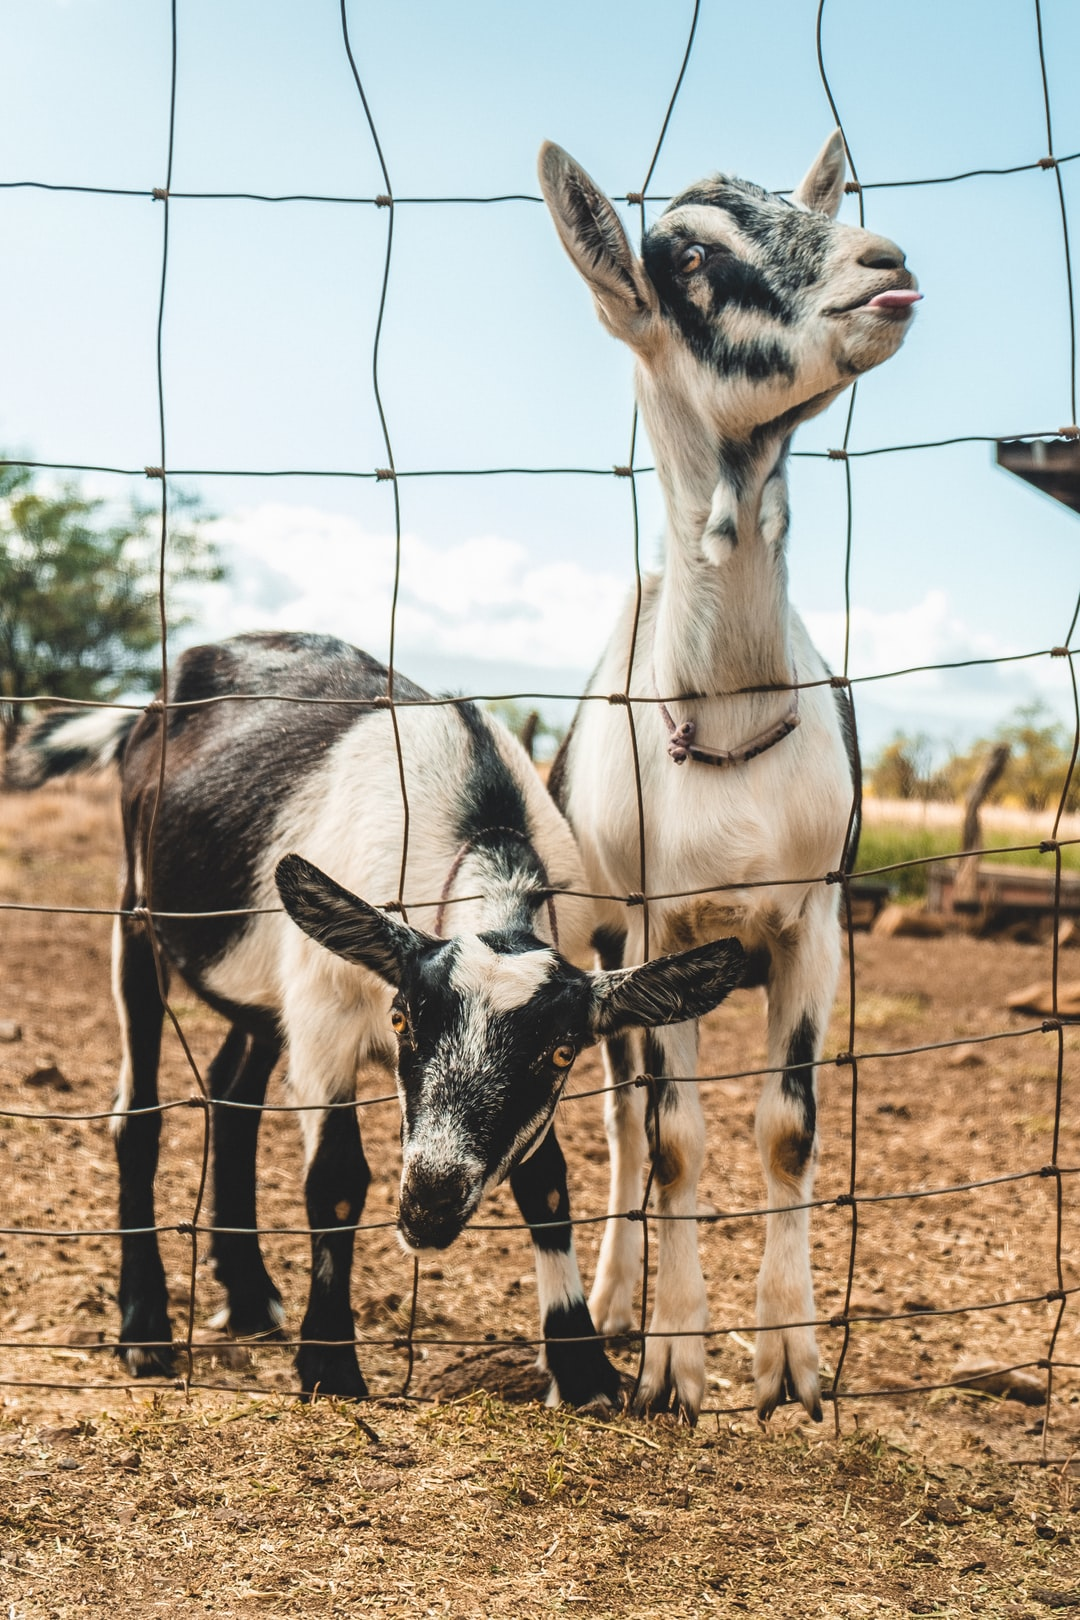 Two black and white goats look at the camera through a fence. One sticks its tongue out.